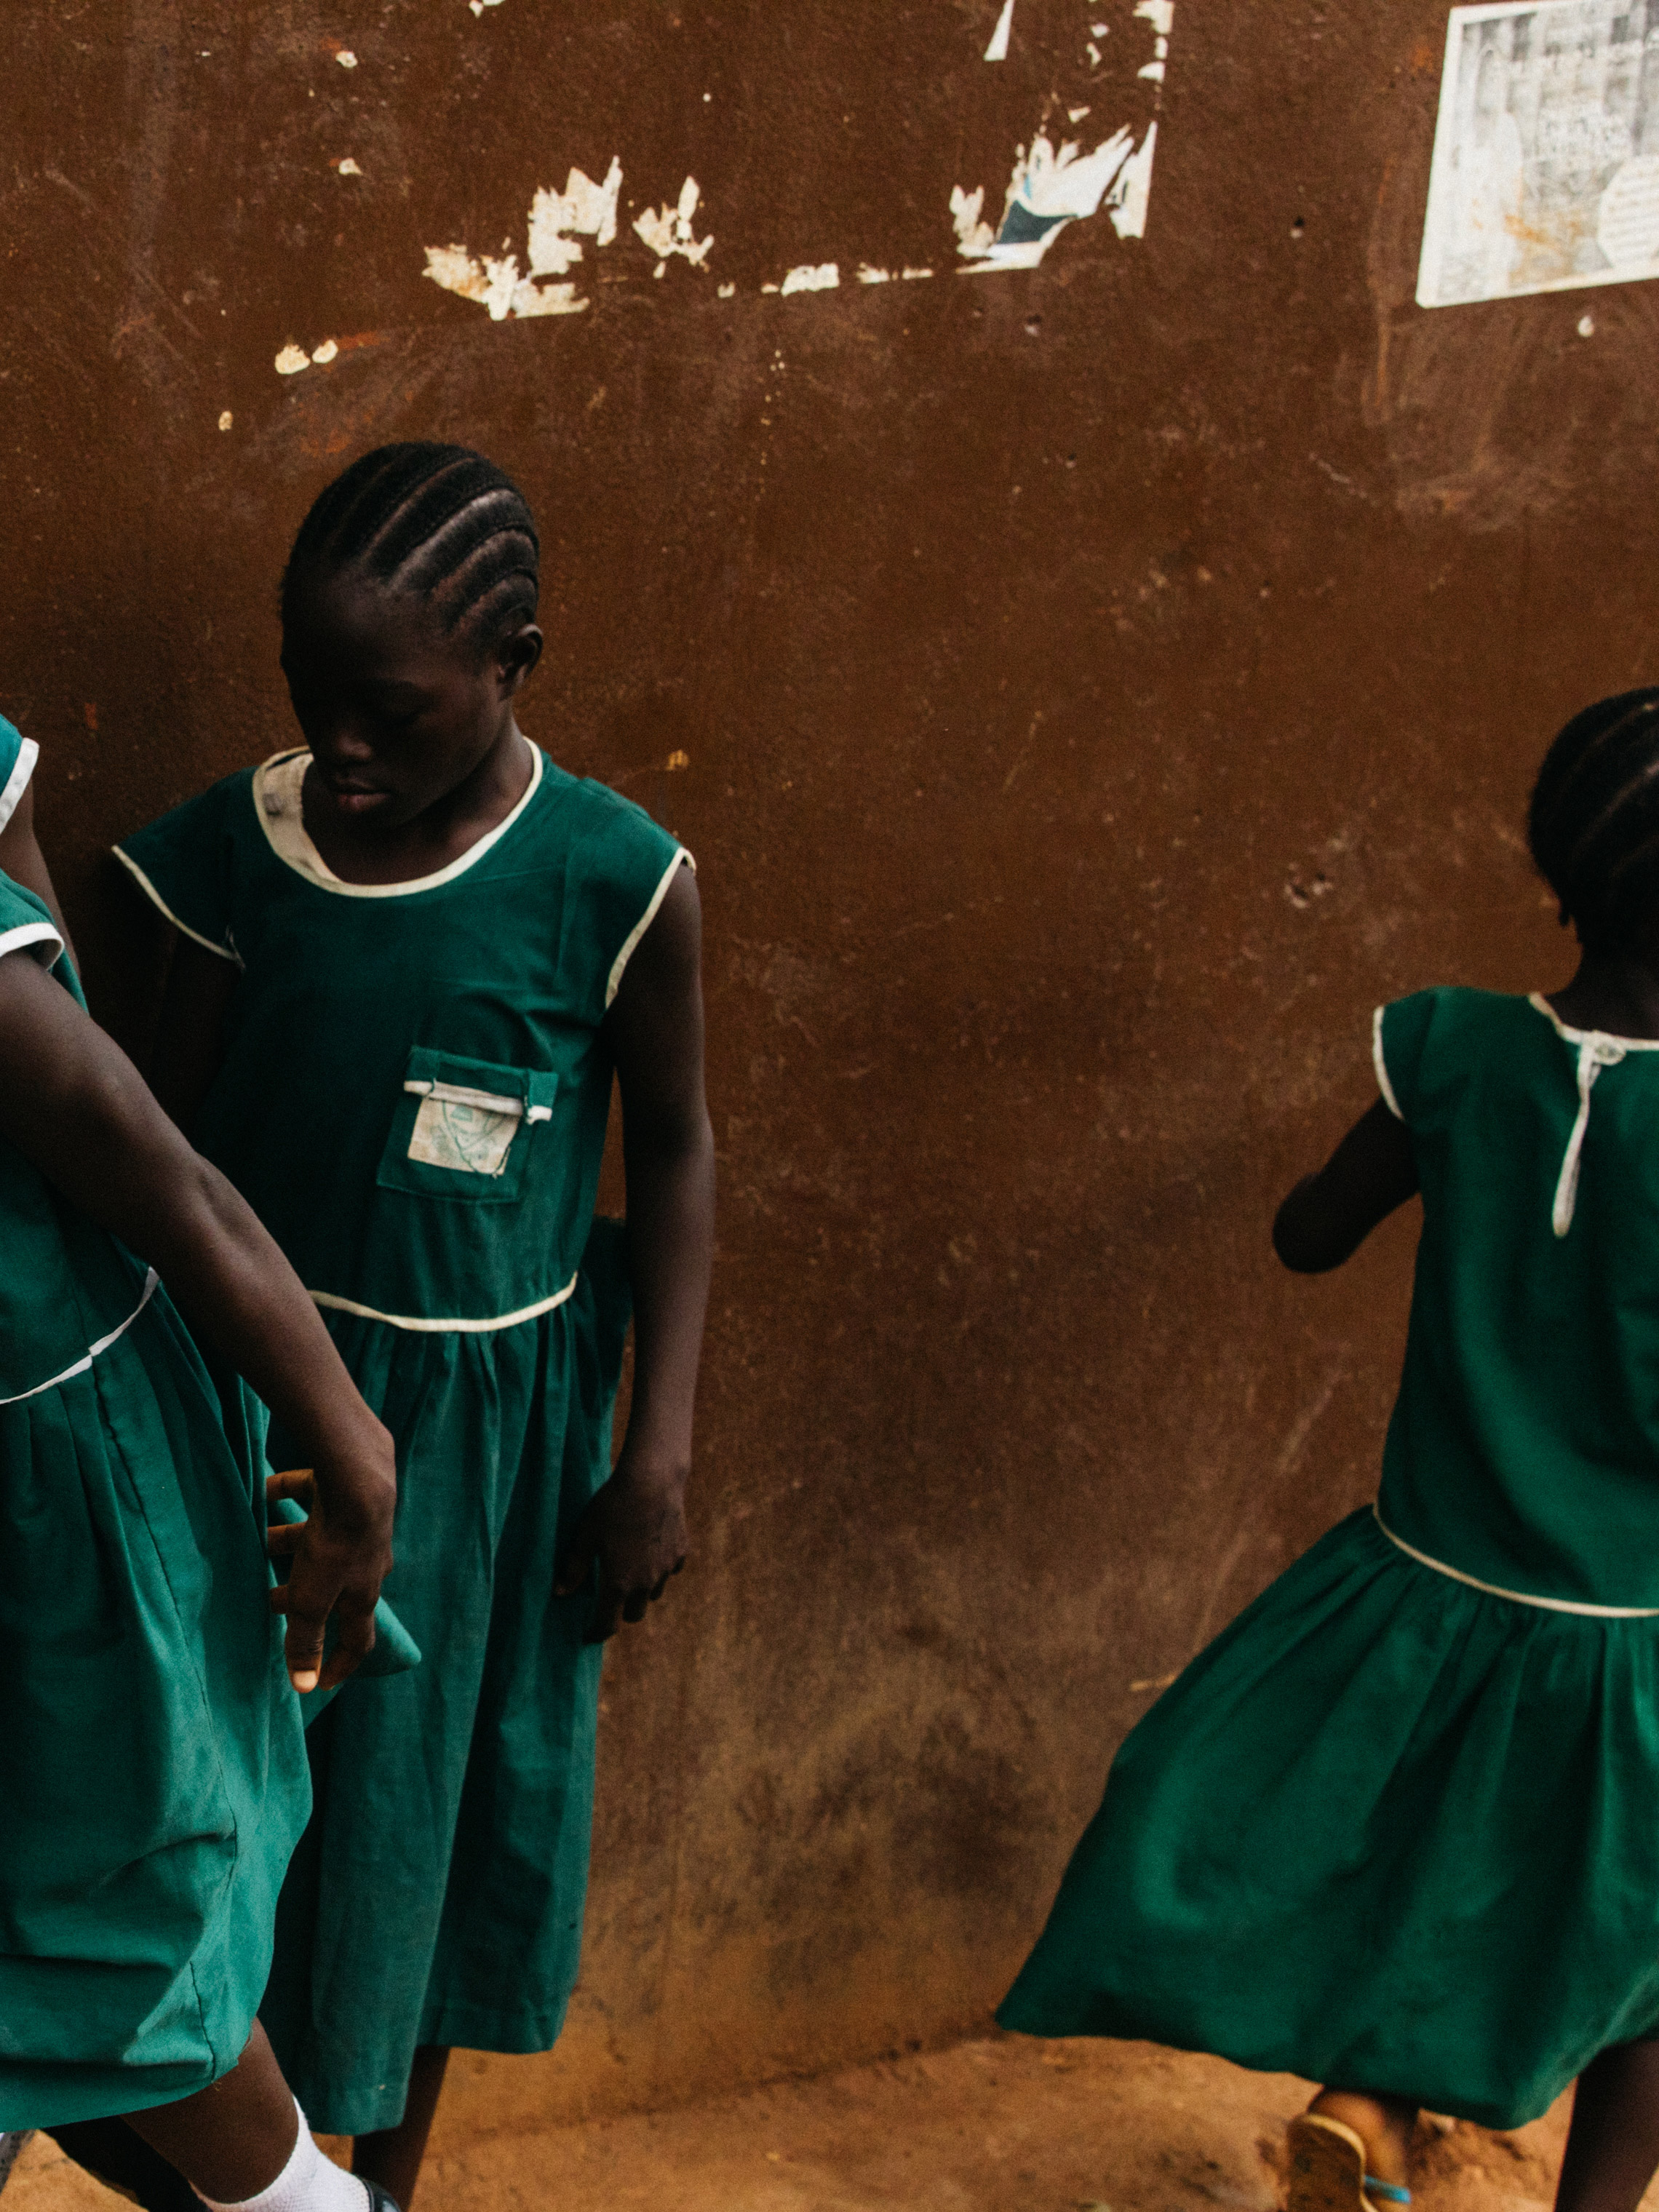 An Intimate Portrait of Life in Sierra Leone